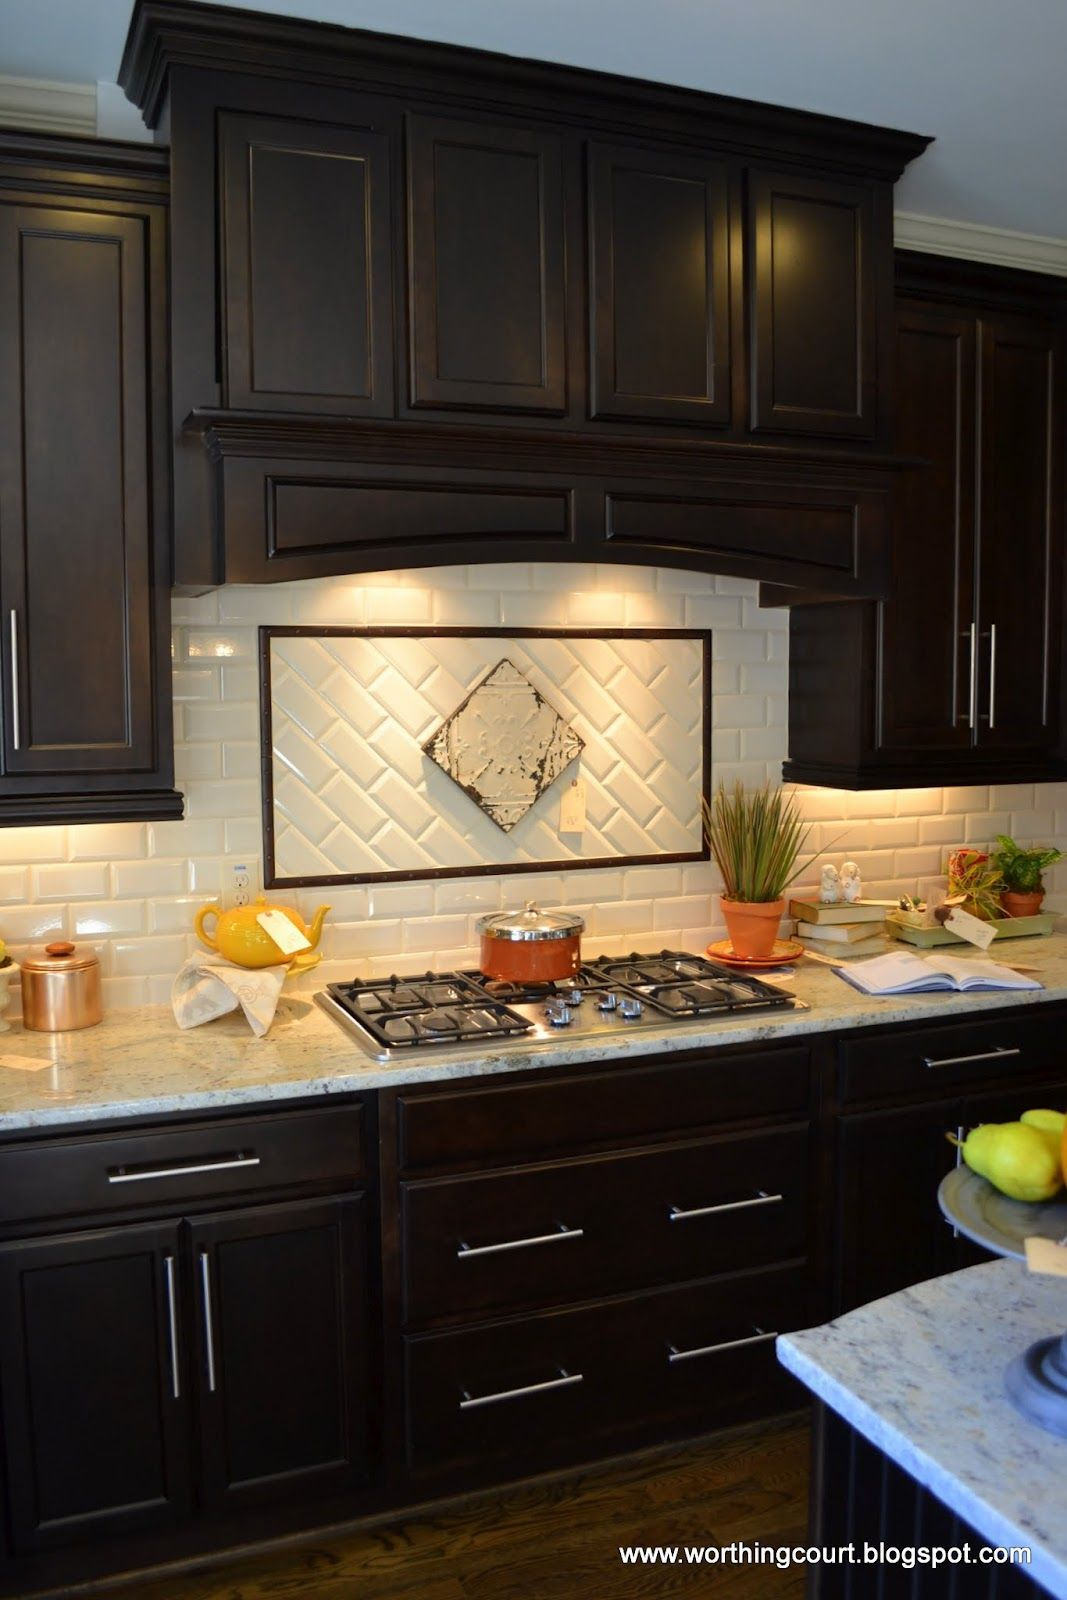 Contemporary Kitchen Backsplash Ideas With Dark Cabinets Wainscoting